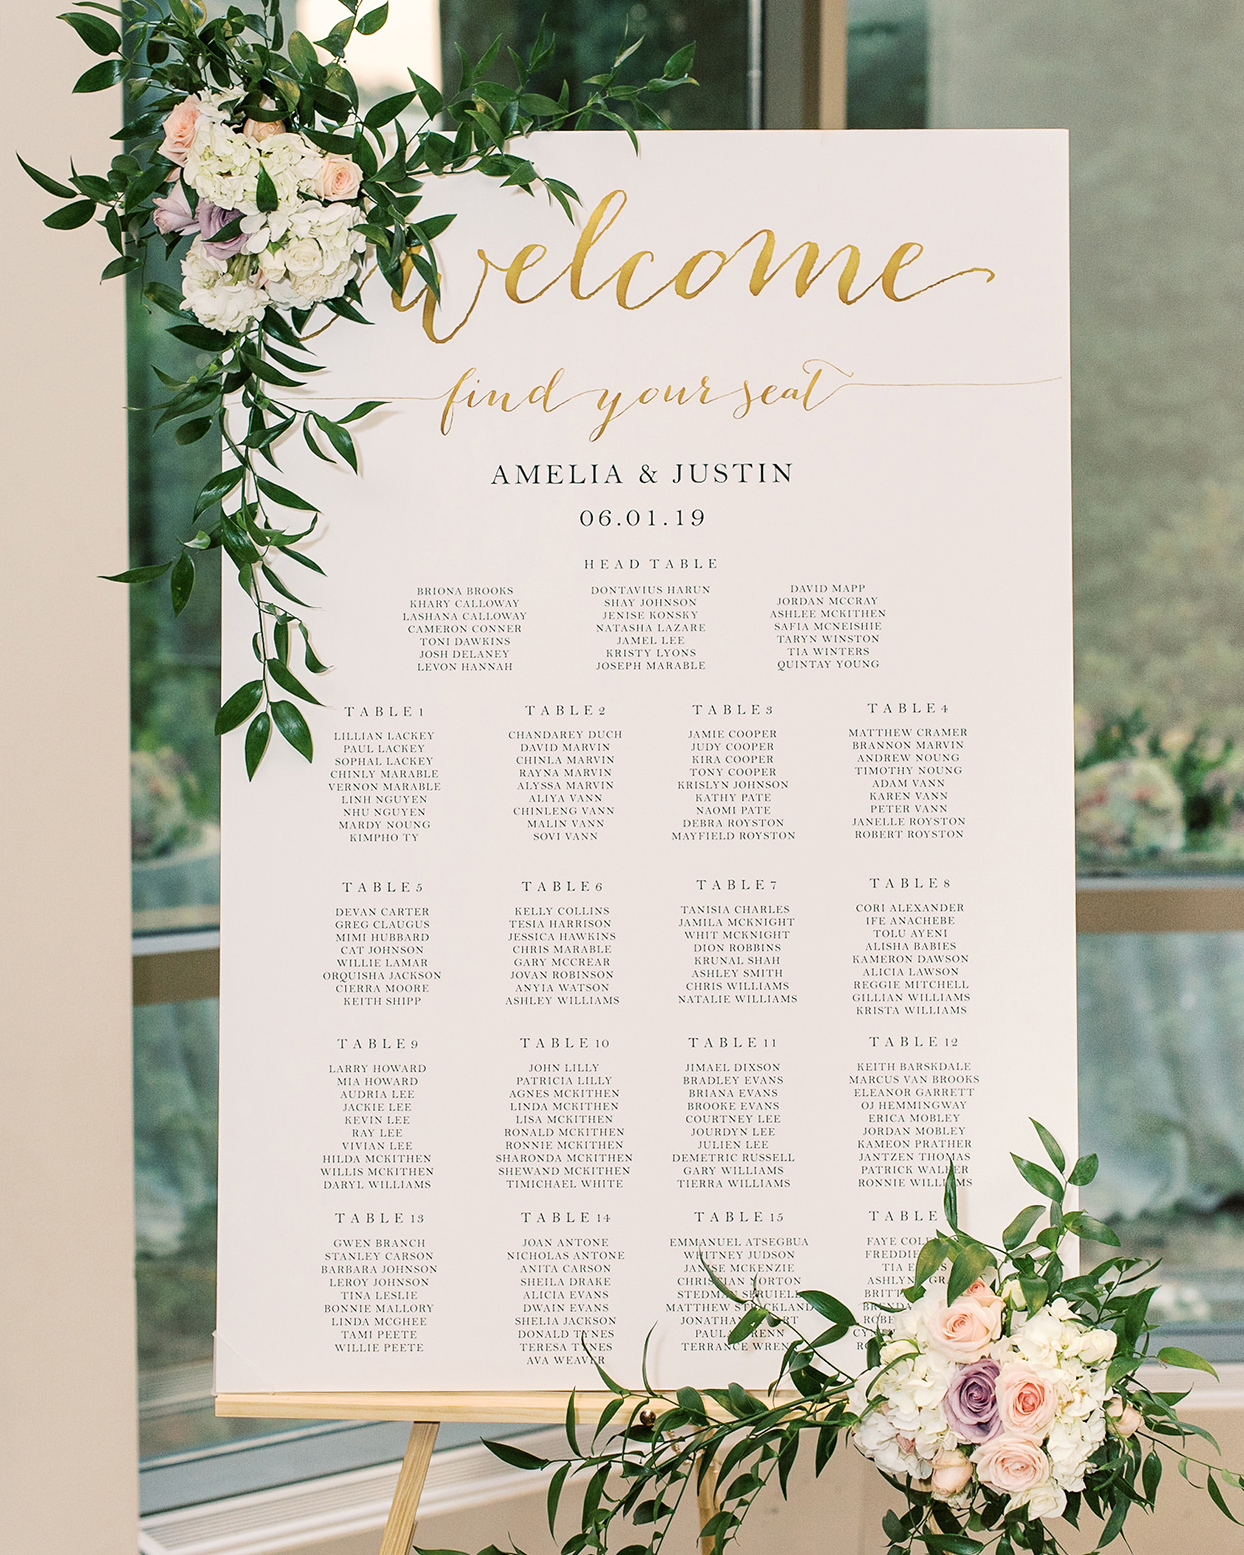 amelia justin wedding seating chart board with flowers